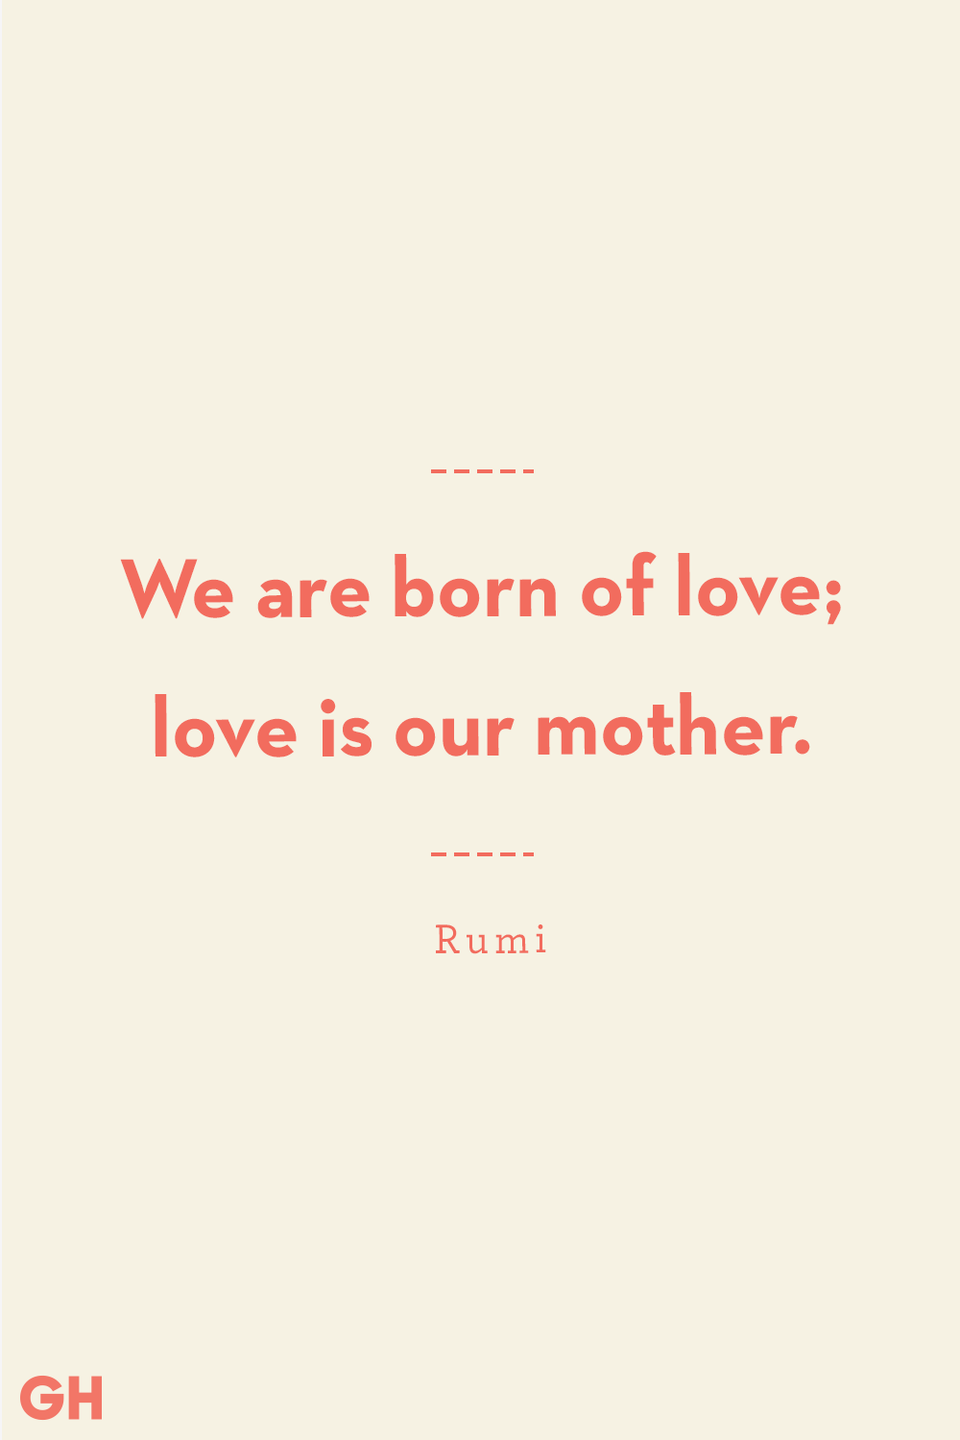 <p>We are born of love; love is our mother.</p>